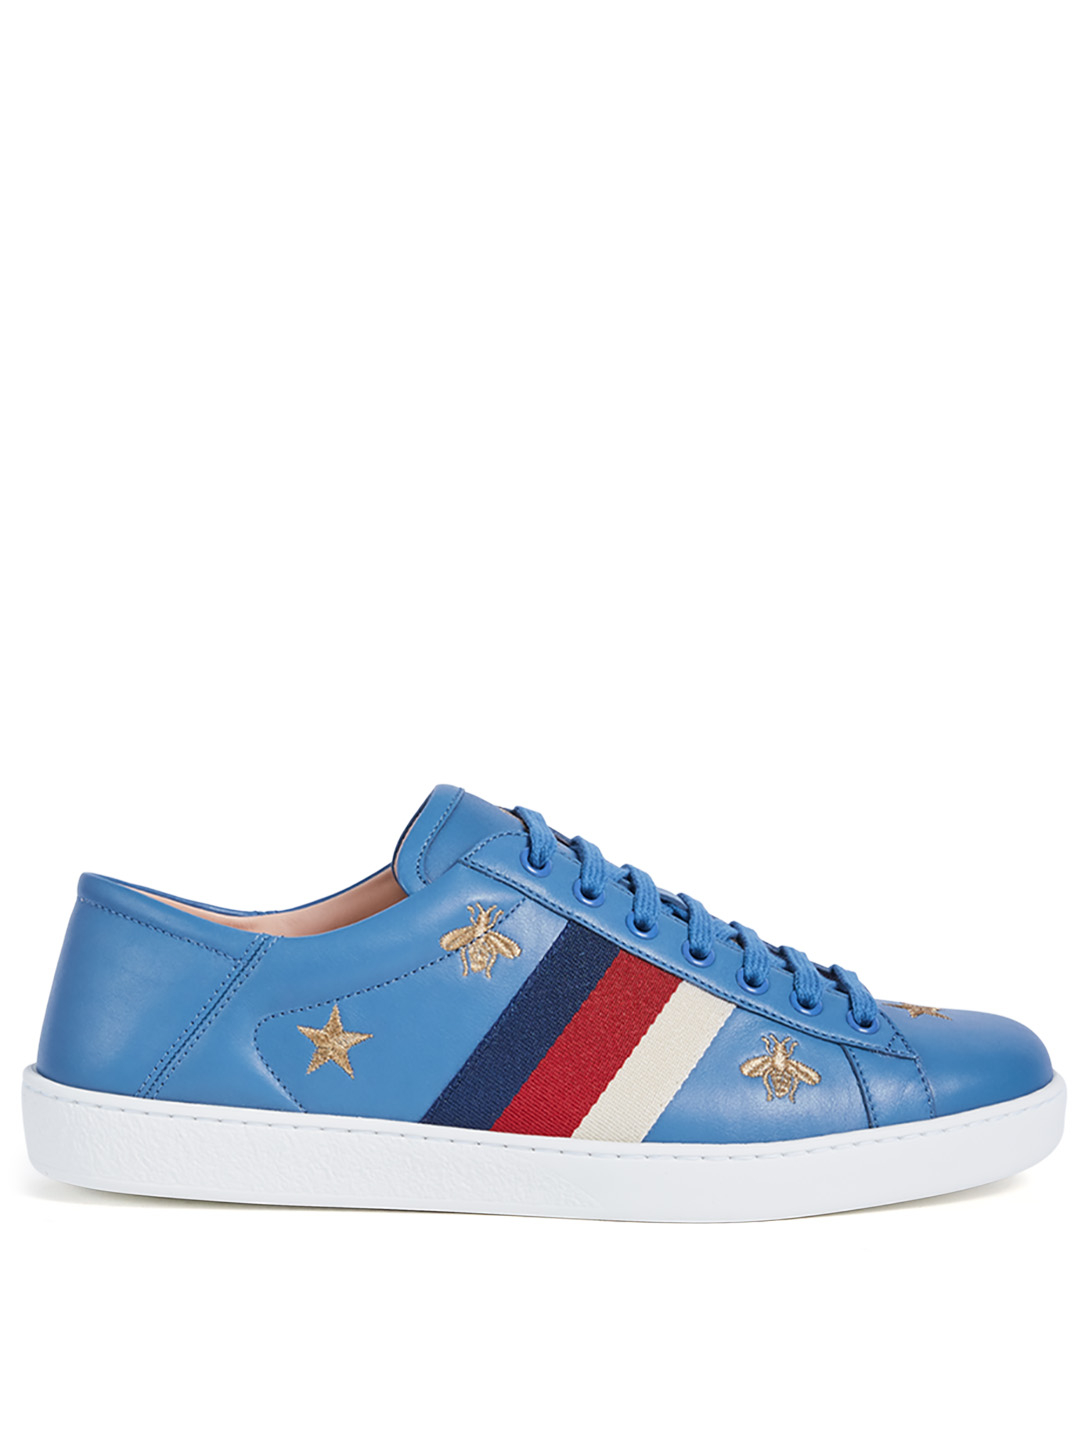 GUCCI Ace Embroidered Leather Sneakers Men's Blue